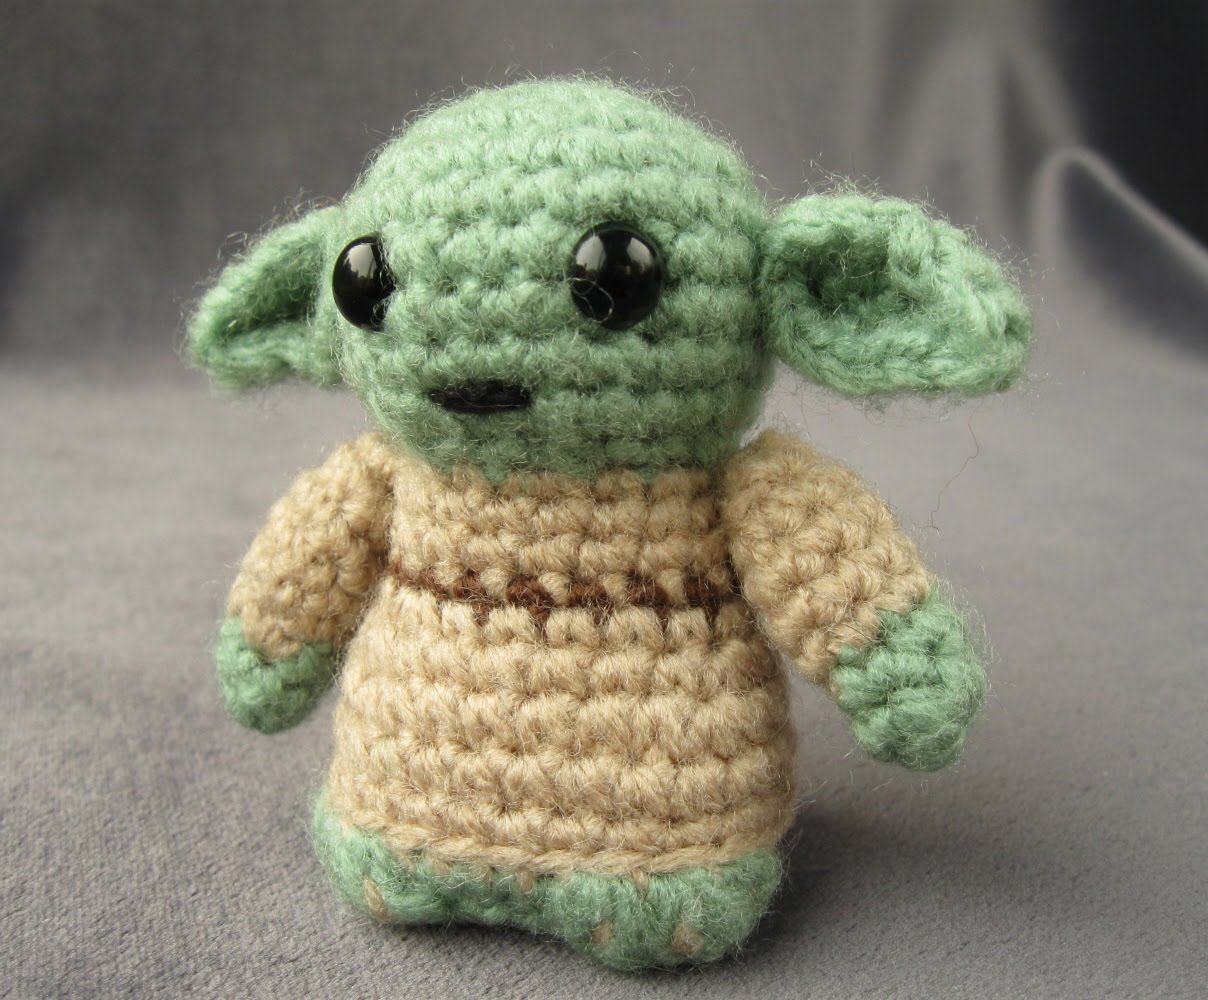 LucyRavenscar - Crochet Creatures: My patterns for sale on Etsy